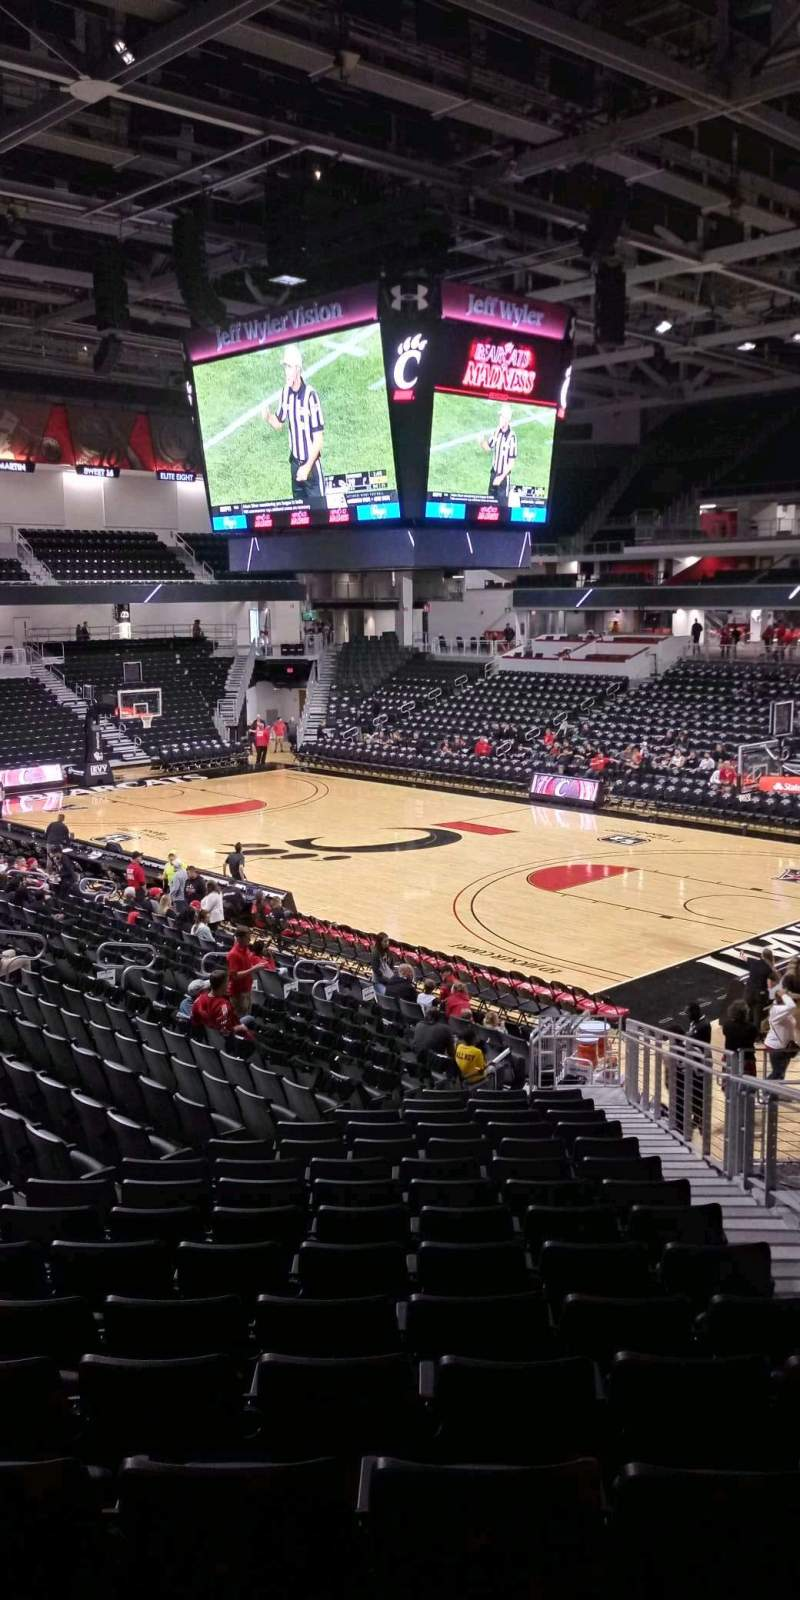 Seating view for Fifth Third Arena Section 113 Row 23 Seat 4